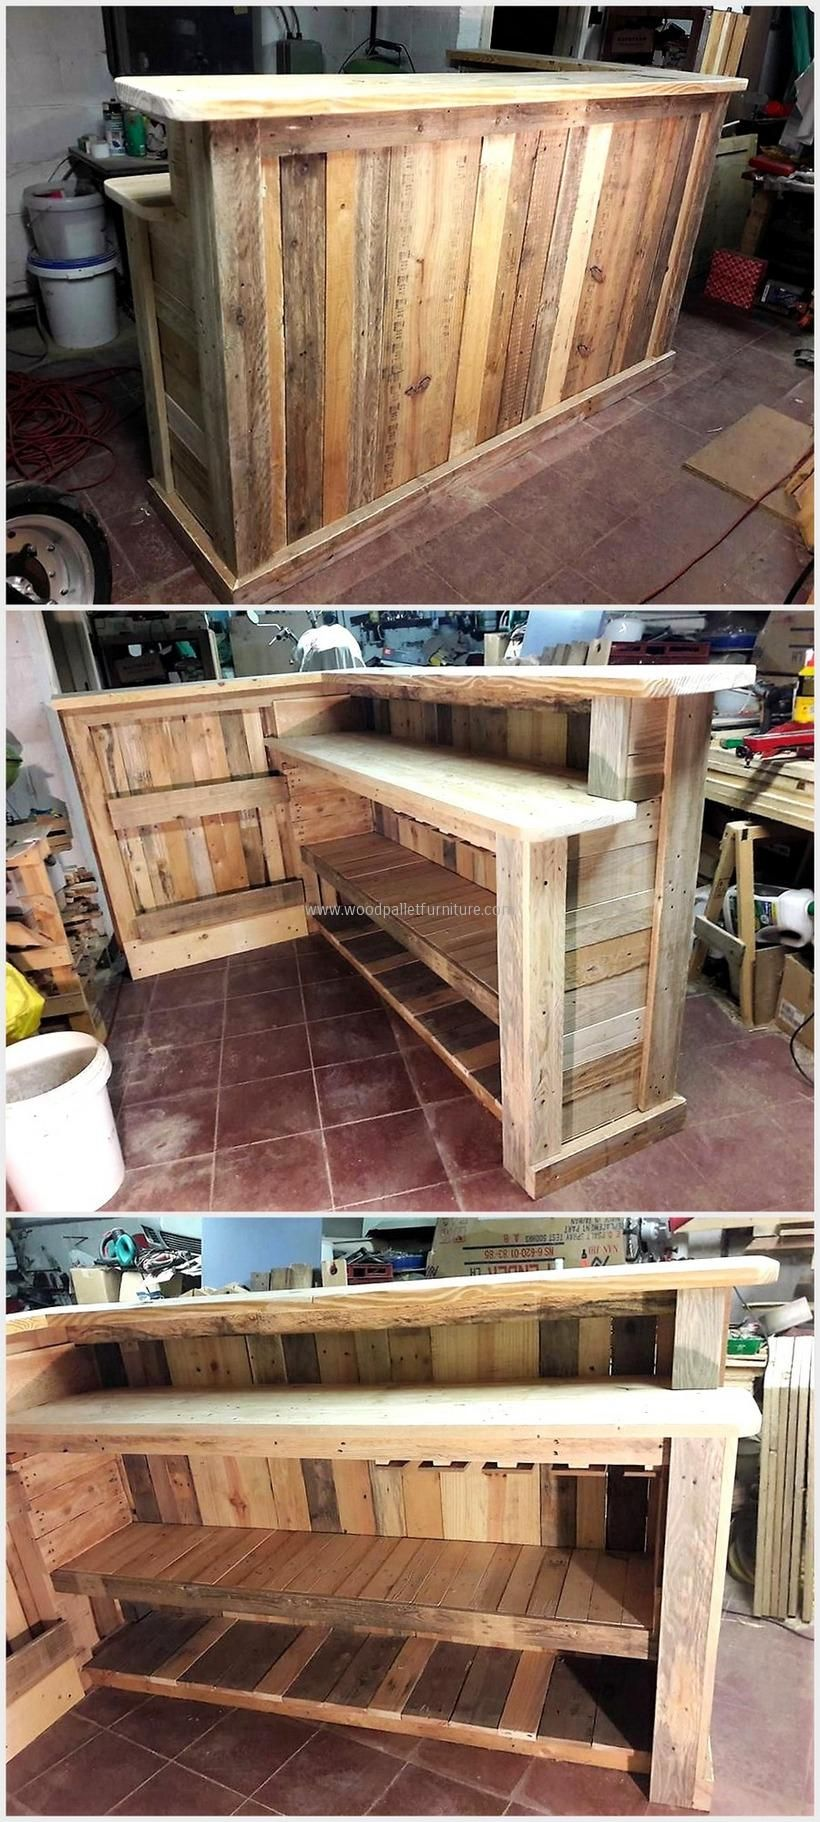 Muebles De Madera Bar Cheap Home Furnishing With Wooden Pallets Mi Casa Con